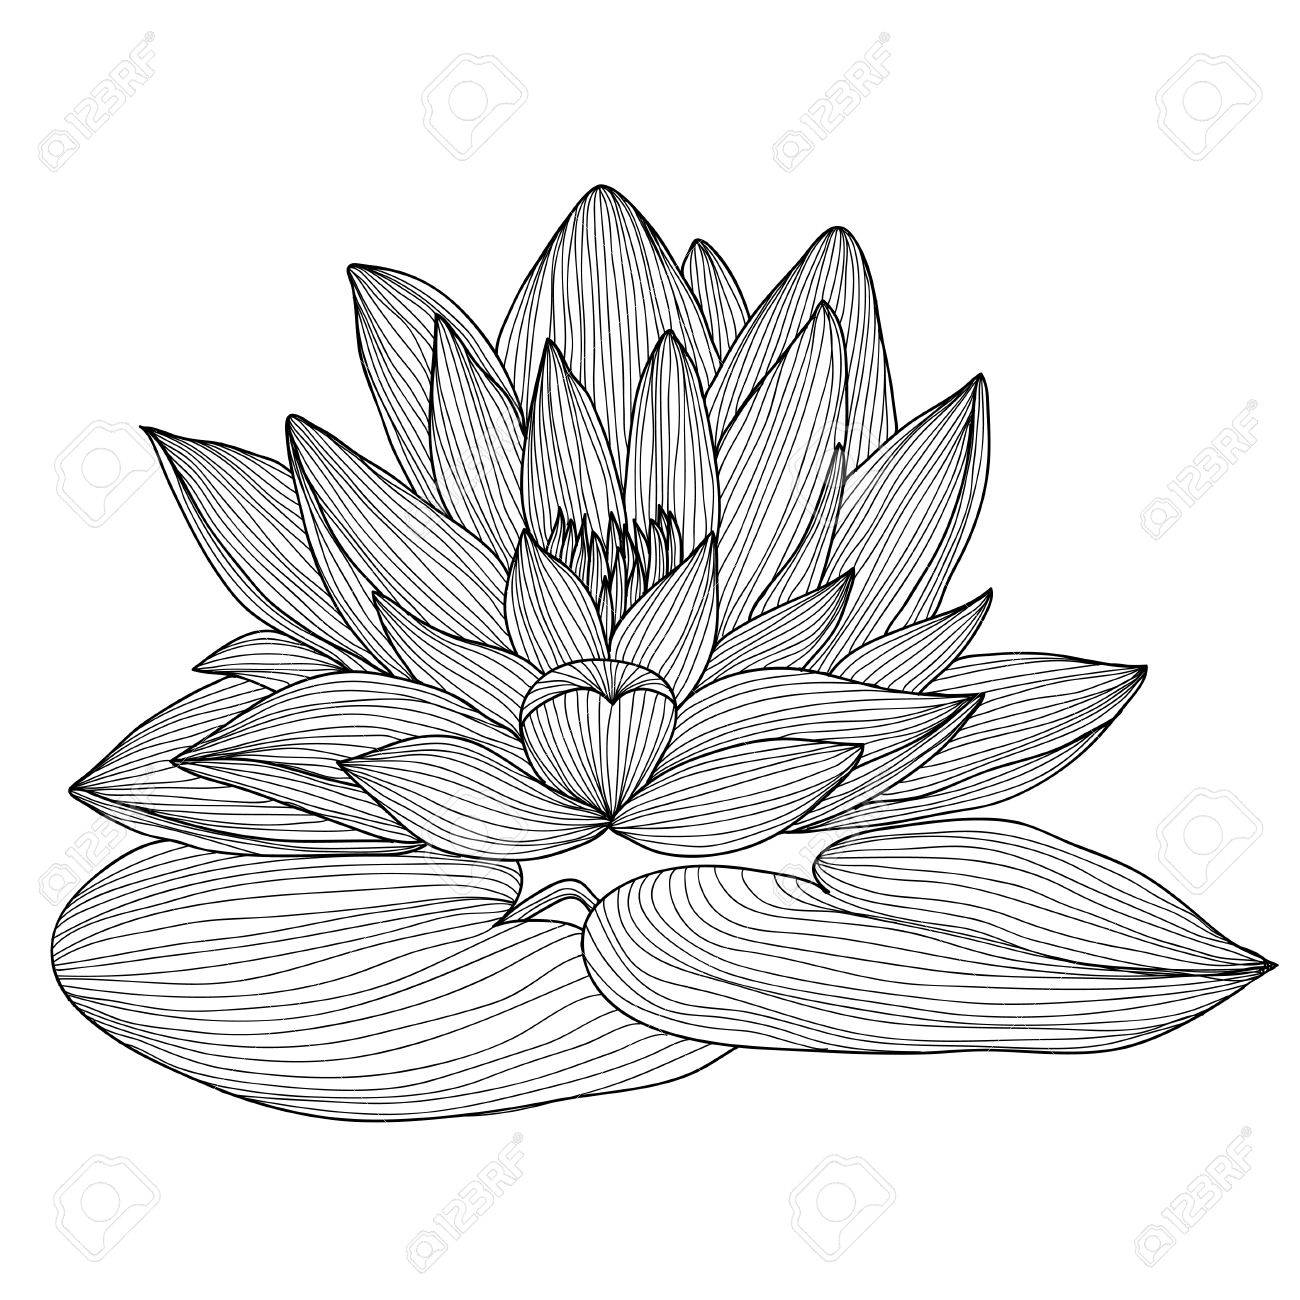 Elegant decorative lotus flower design element floral branch elegant decorative lotus flower design element floral branch floral decoration for vintage wedding izmirmasajfo